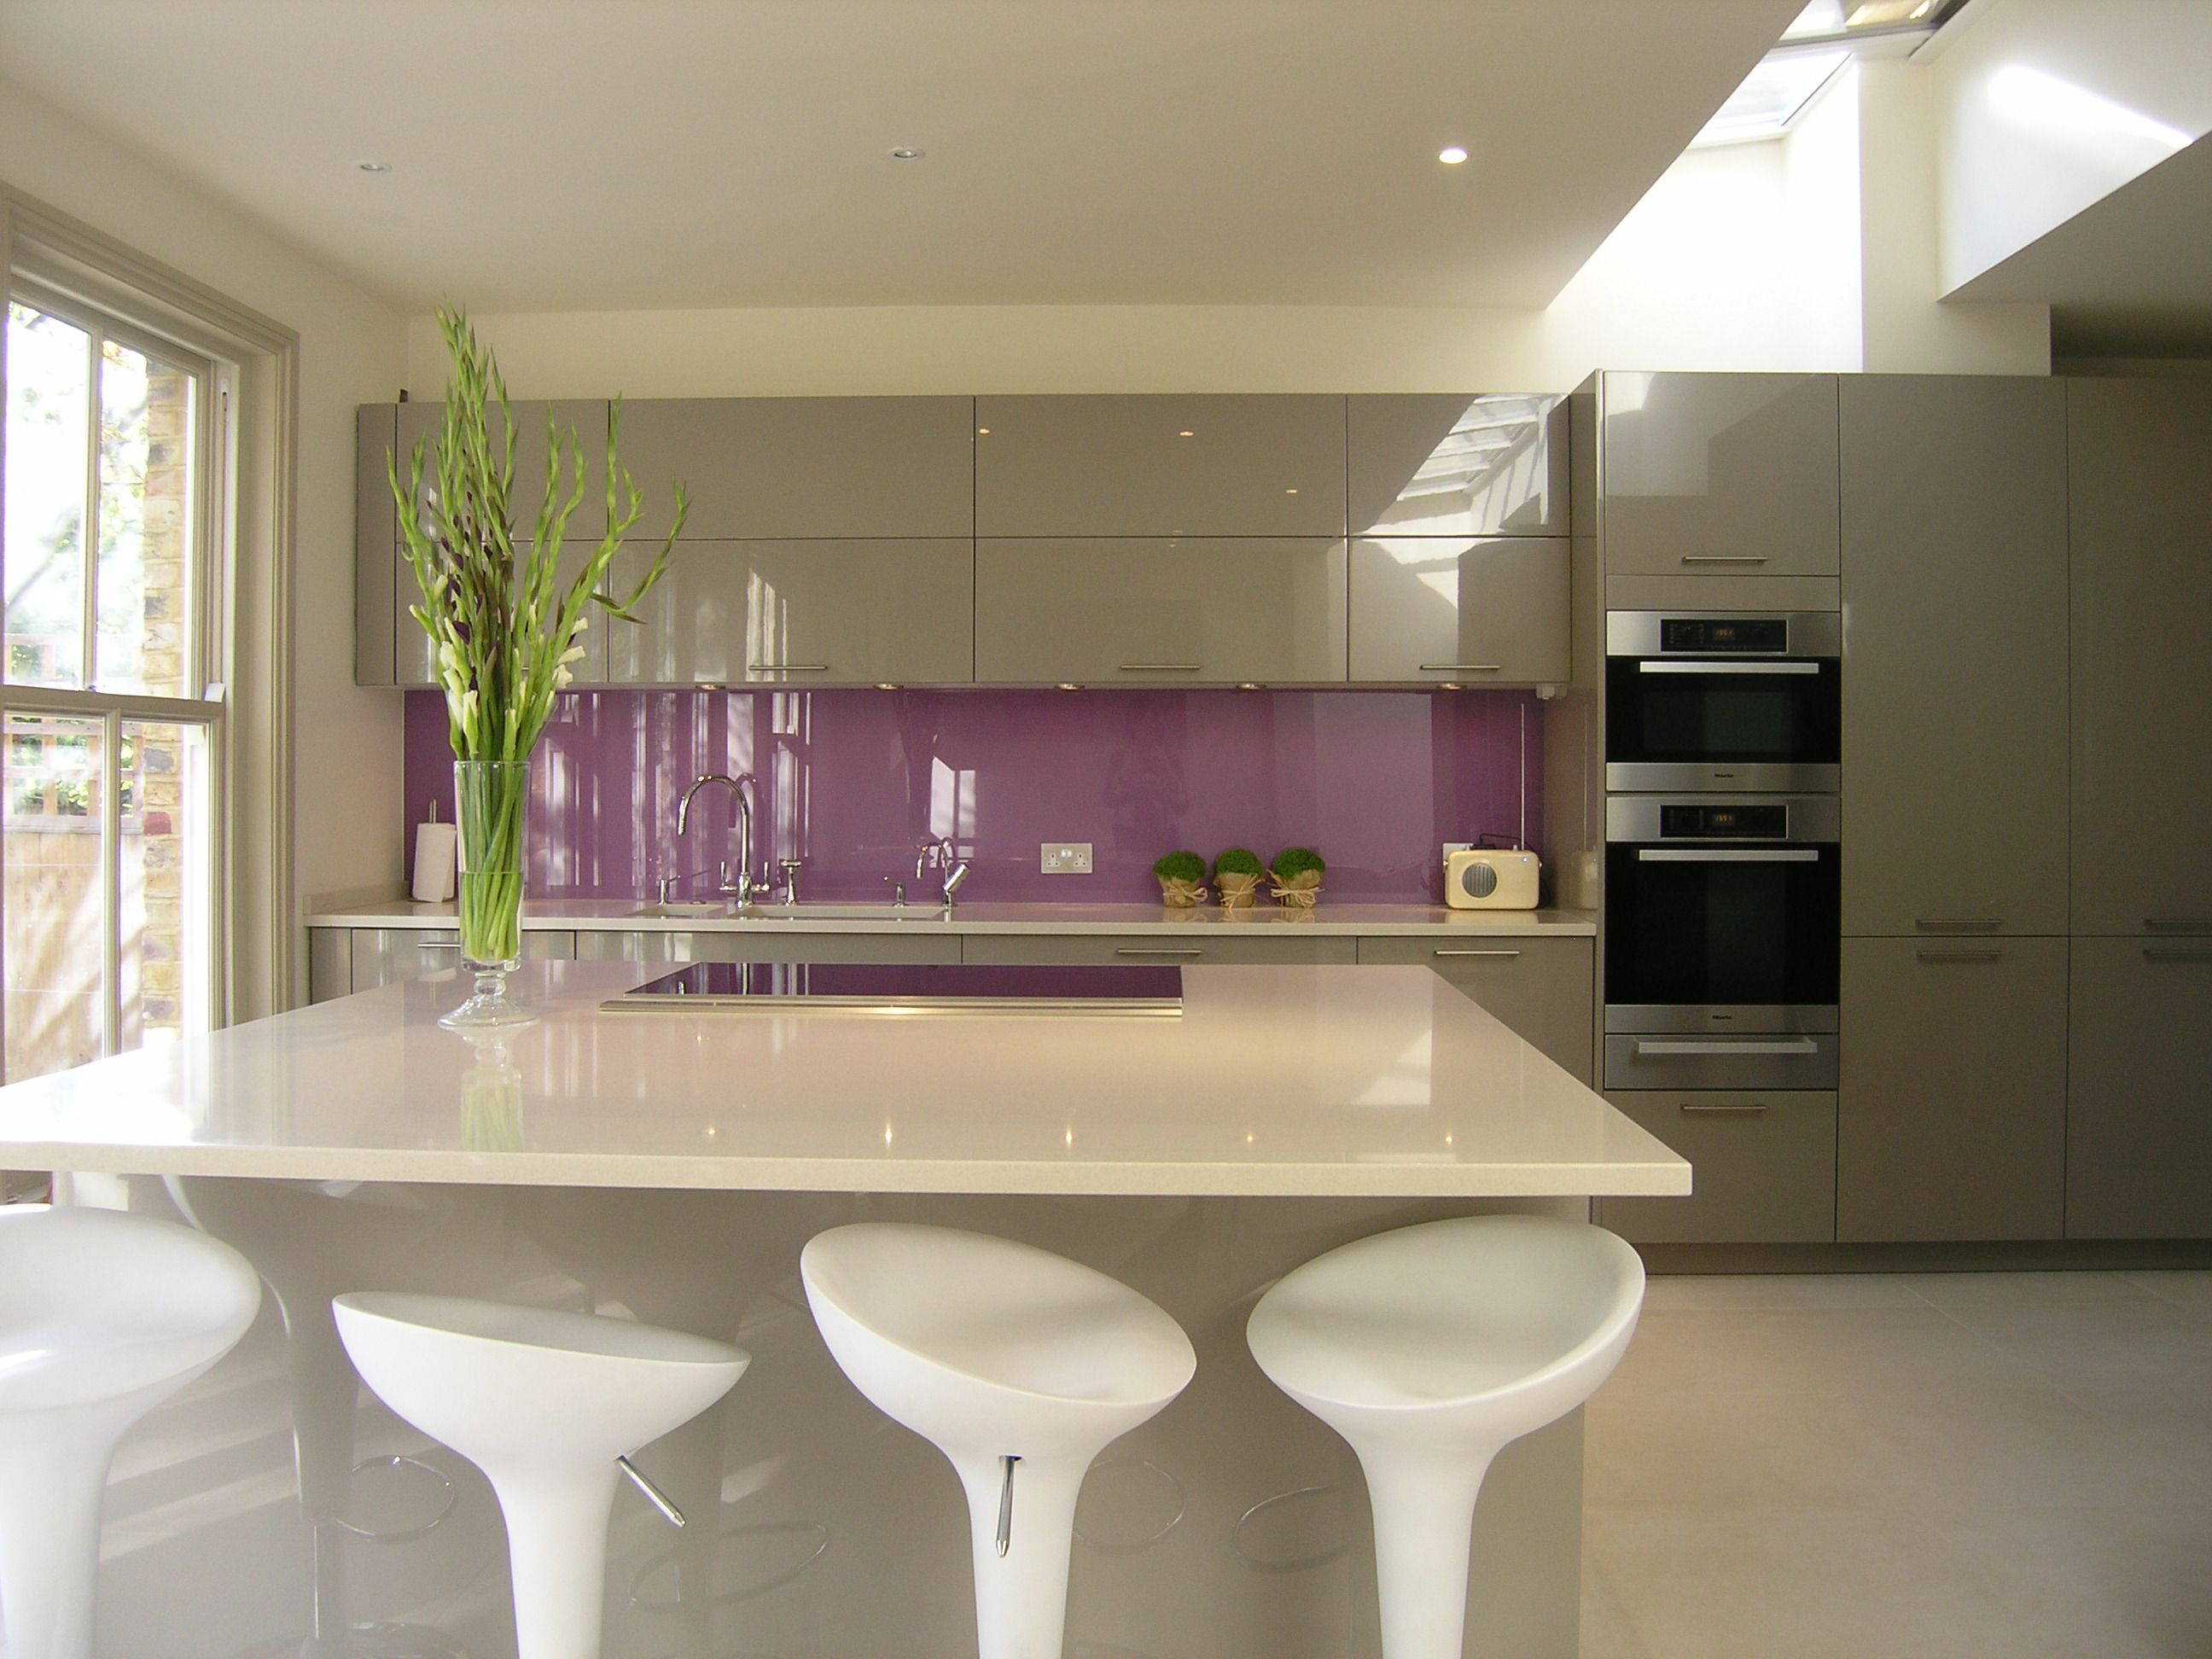 Clapham Shaker Kitchen: High Gloss Cappuccino Lacquer Kitchen With A Classic Short